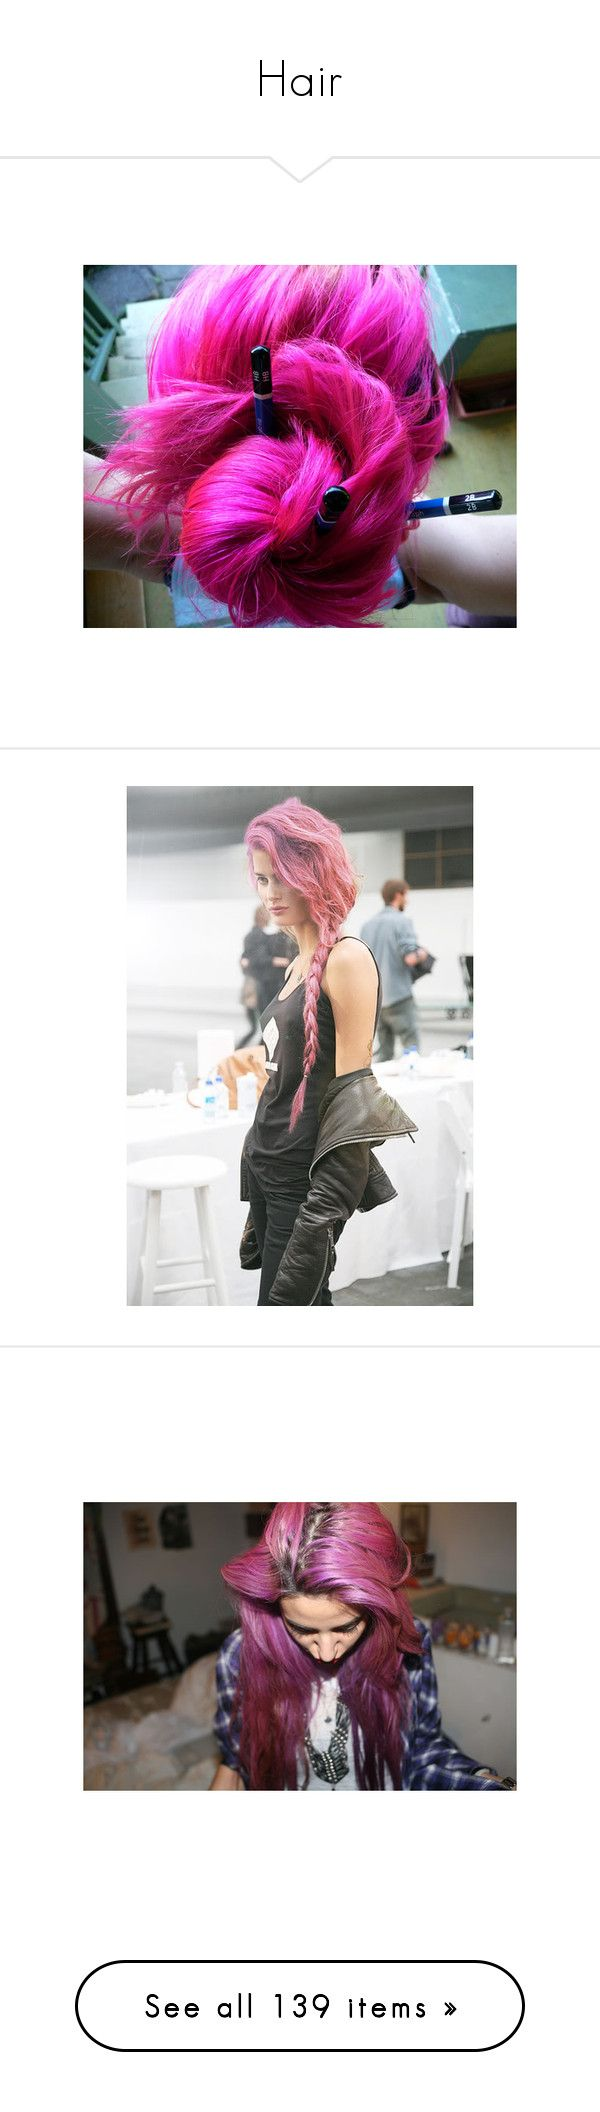 """""""Hair"""" by tobuildcastlesinthesky ❤ liked on Polyvore featuring hair, people, pink hair, hairstyles, models, pictures, girls, taylor momsen, gossip girl and accessories"""